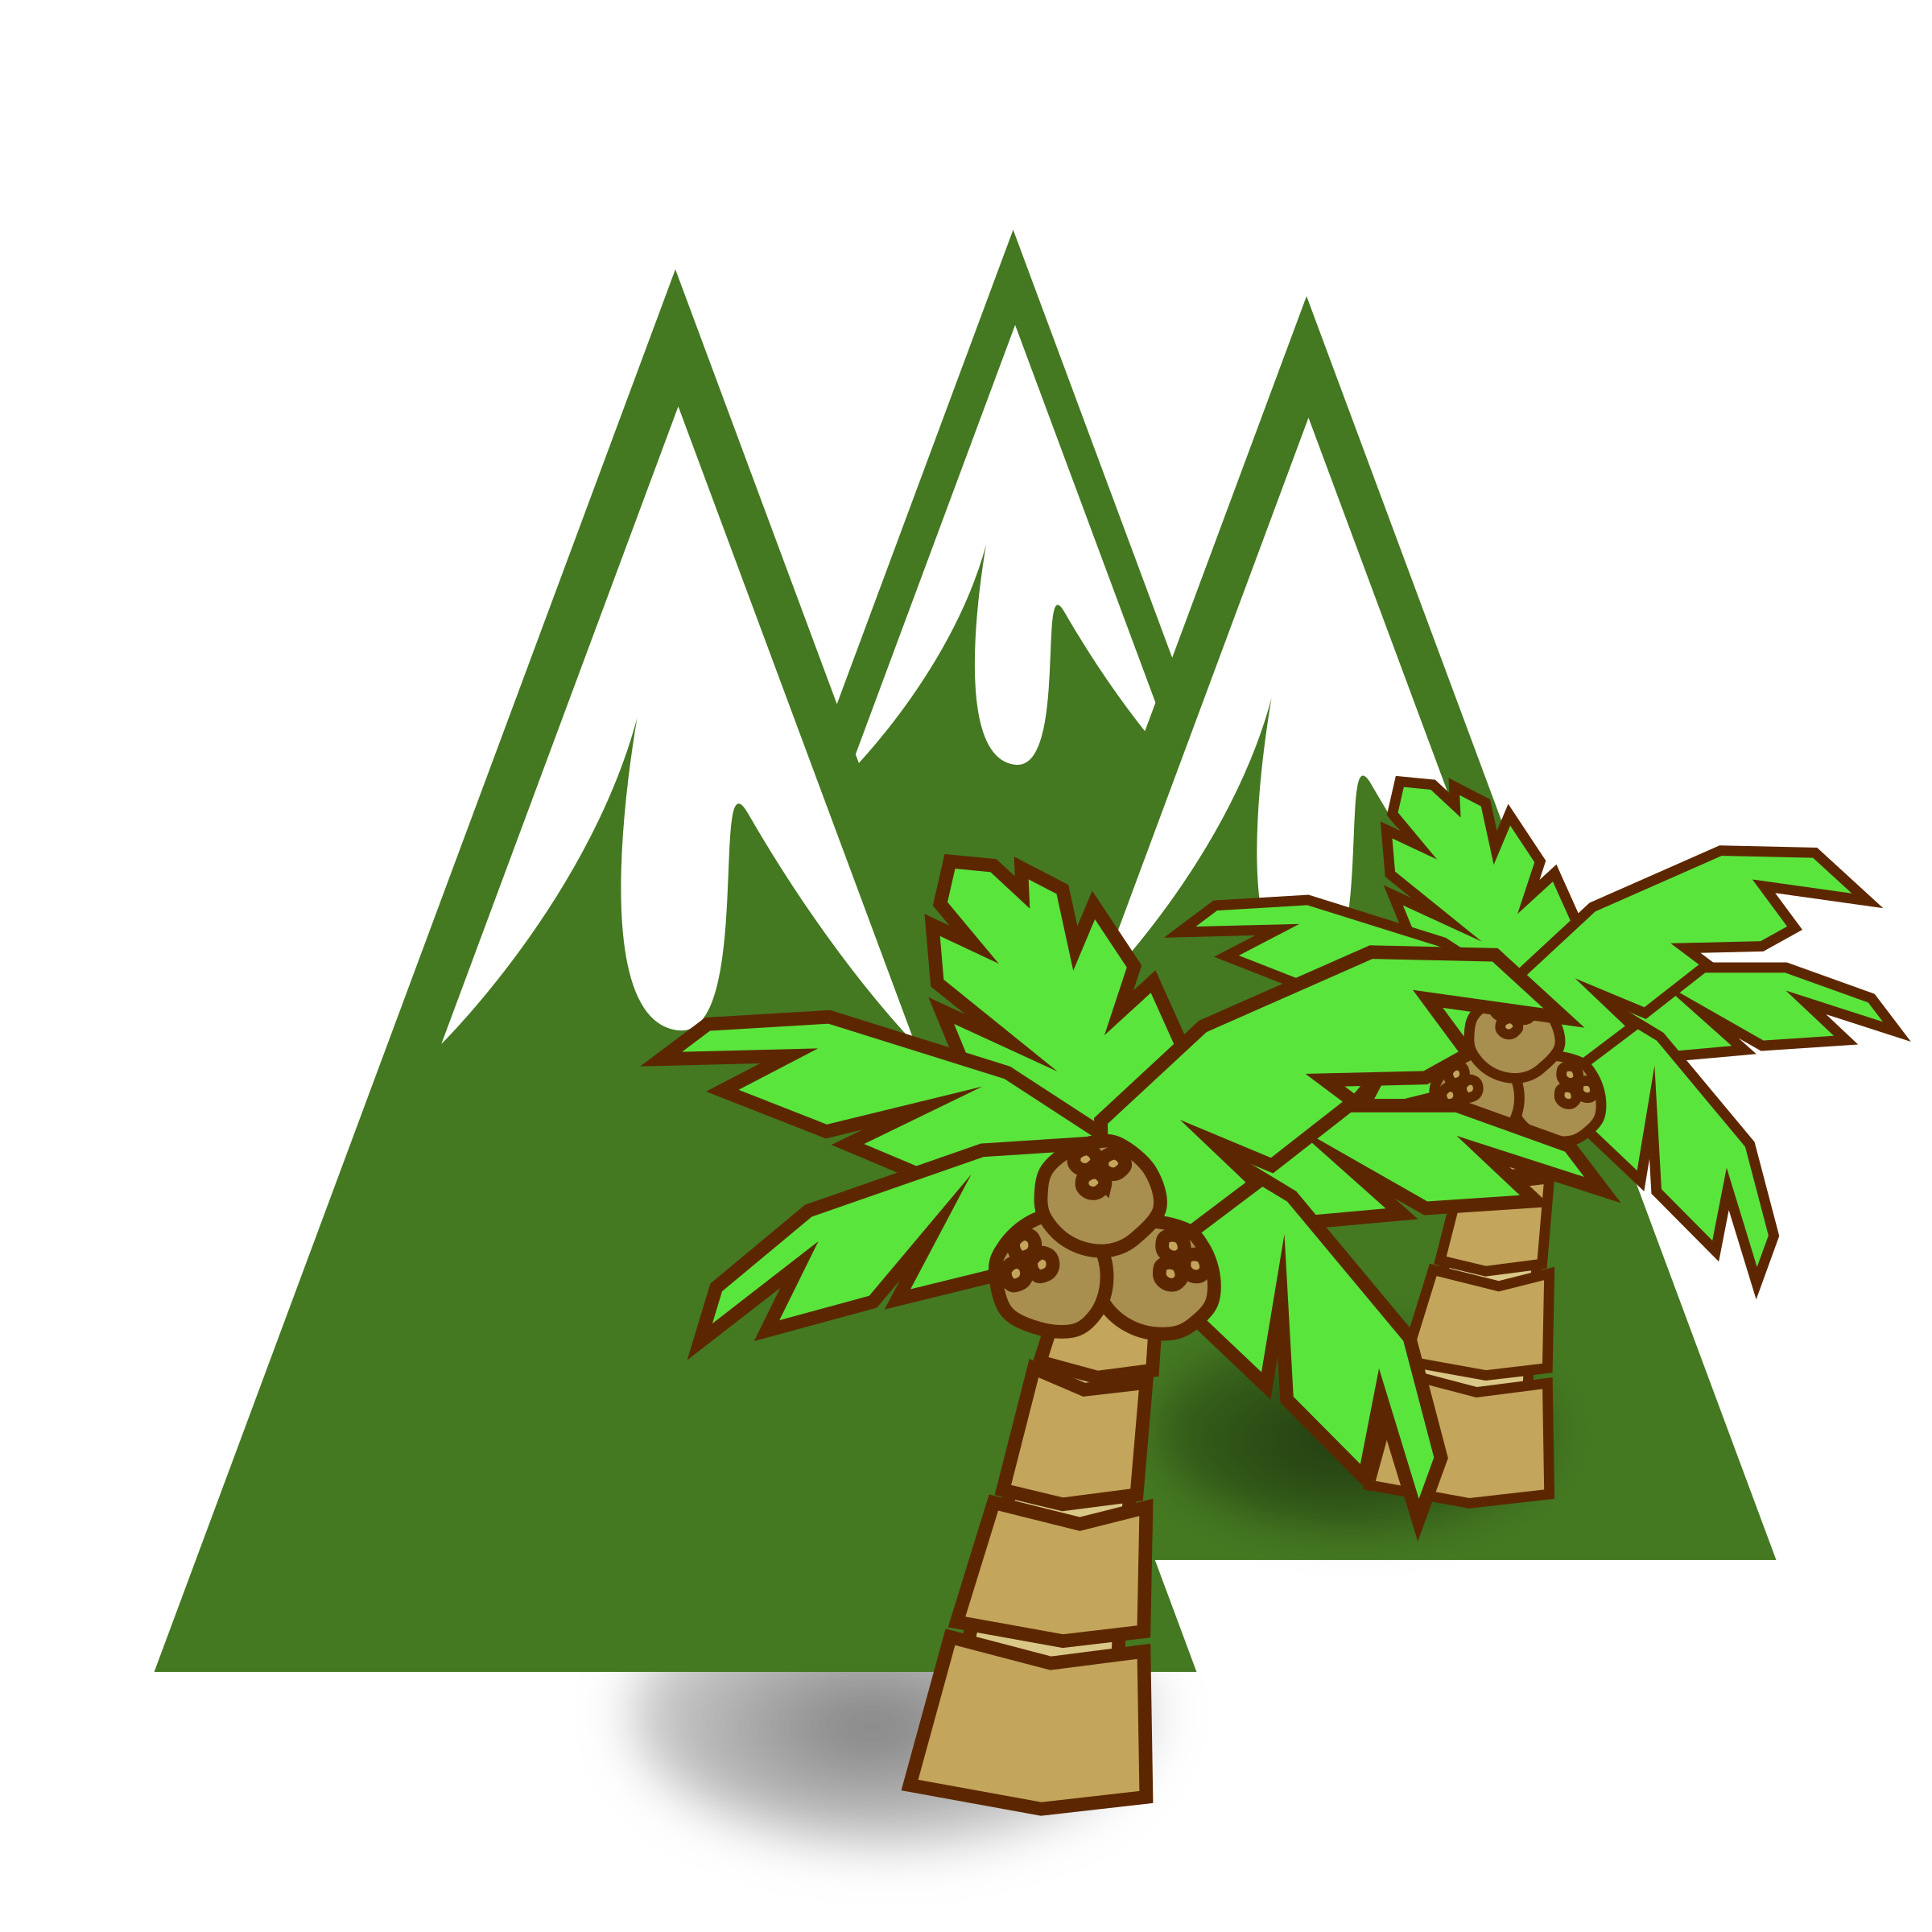 Jungle icons png free. Clipart mountains river